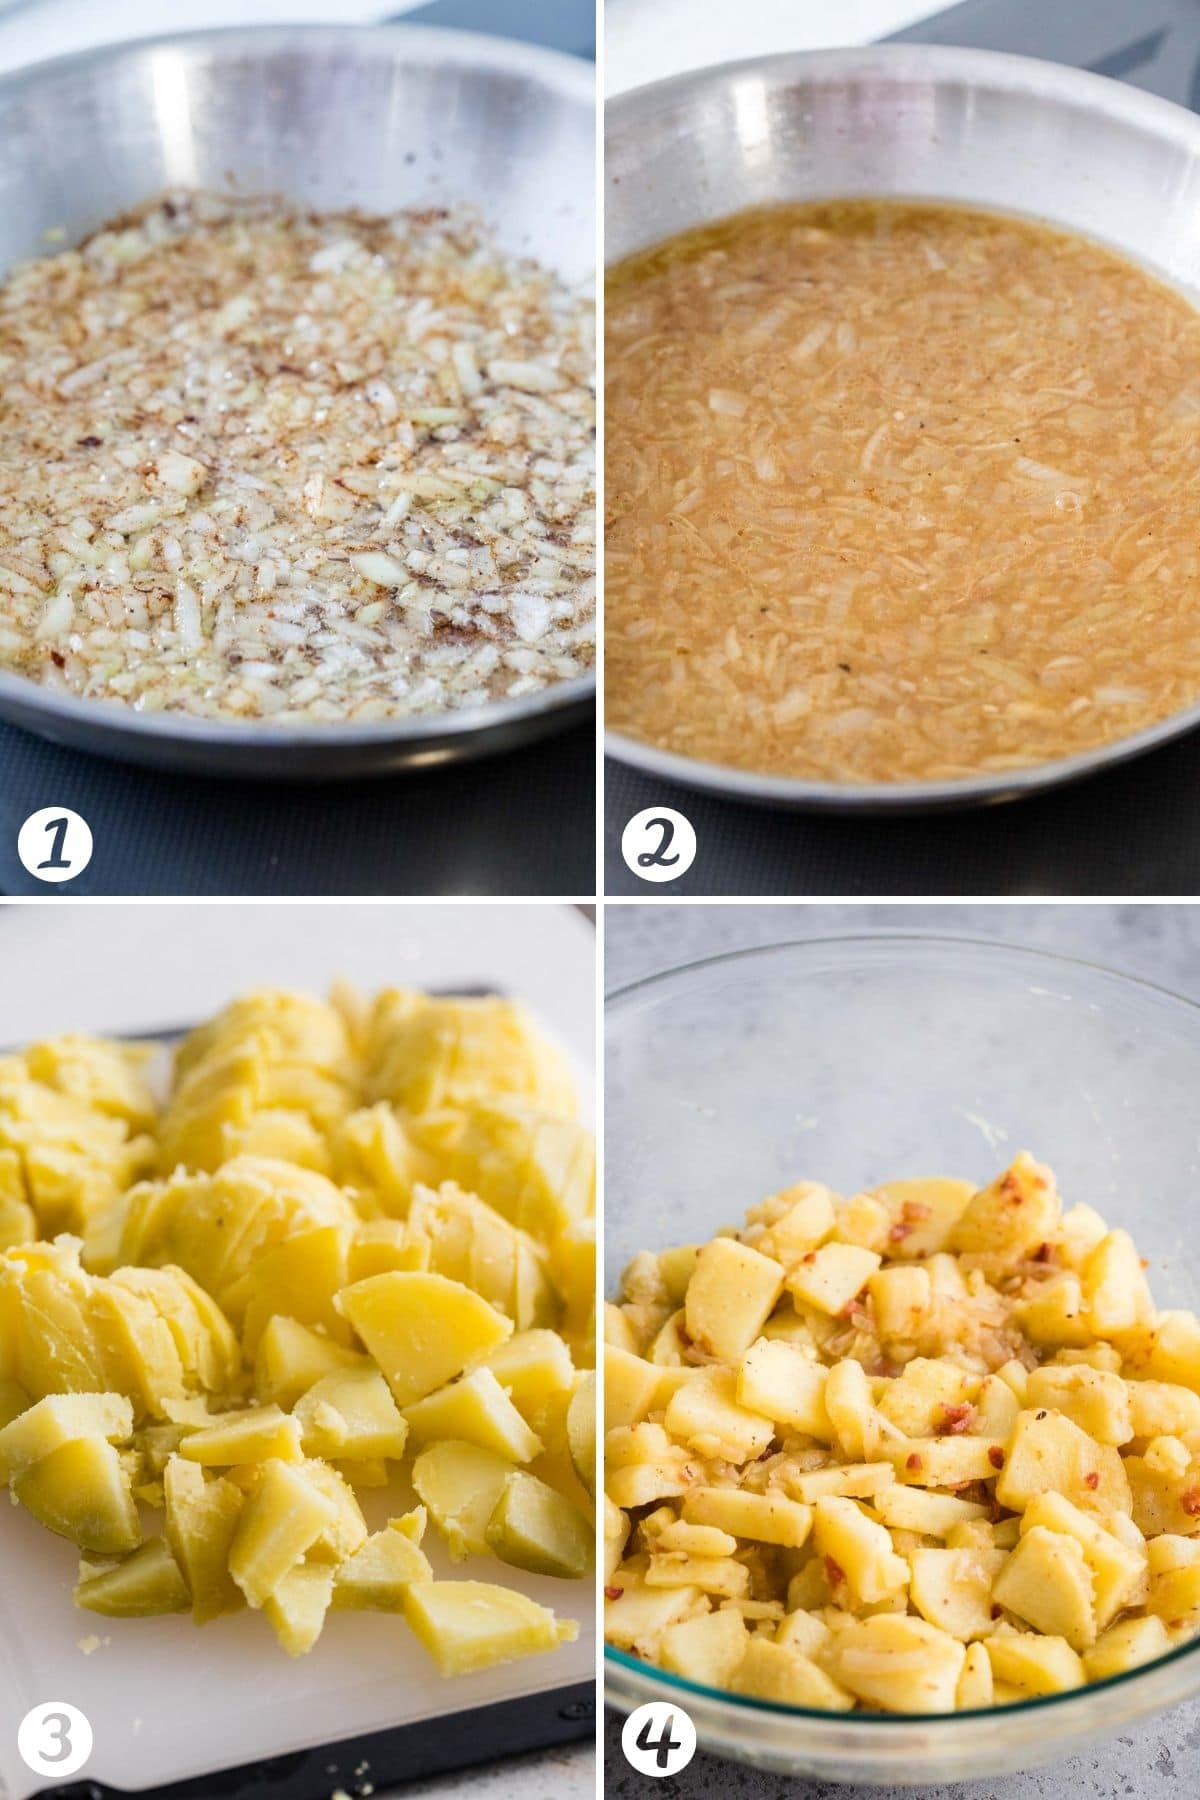 Steps for making German Potato Salad